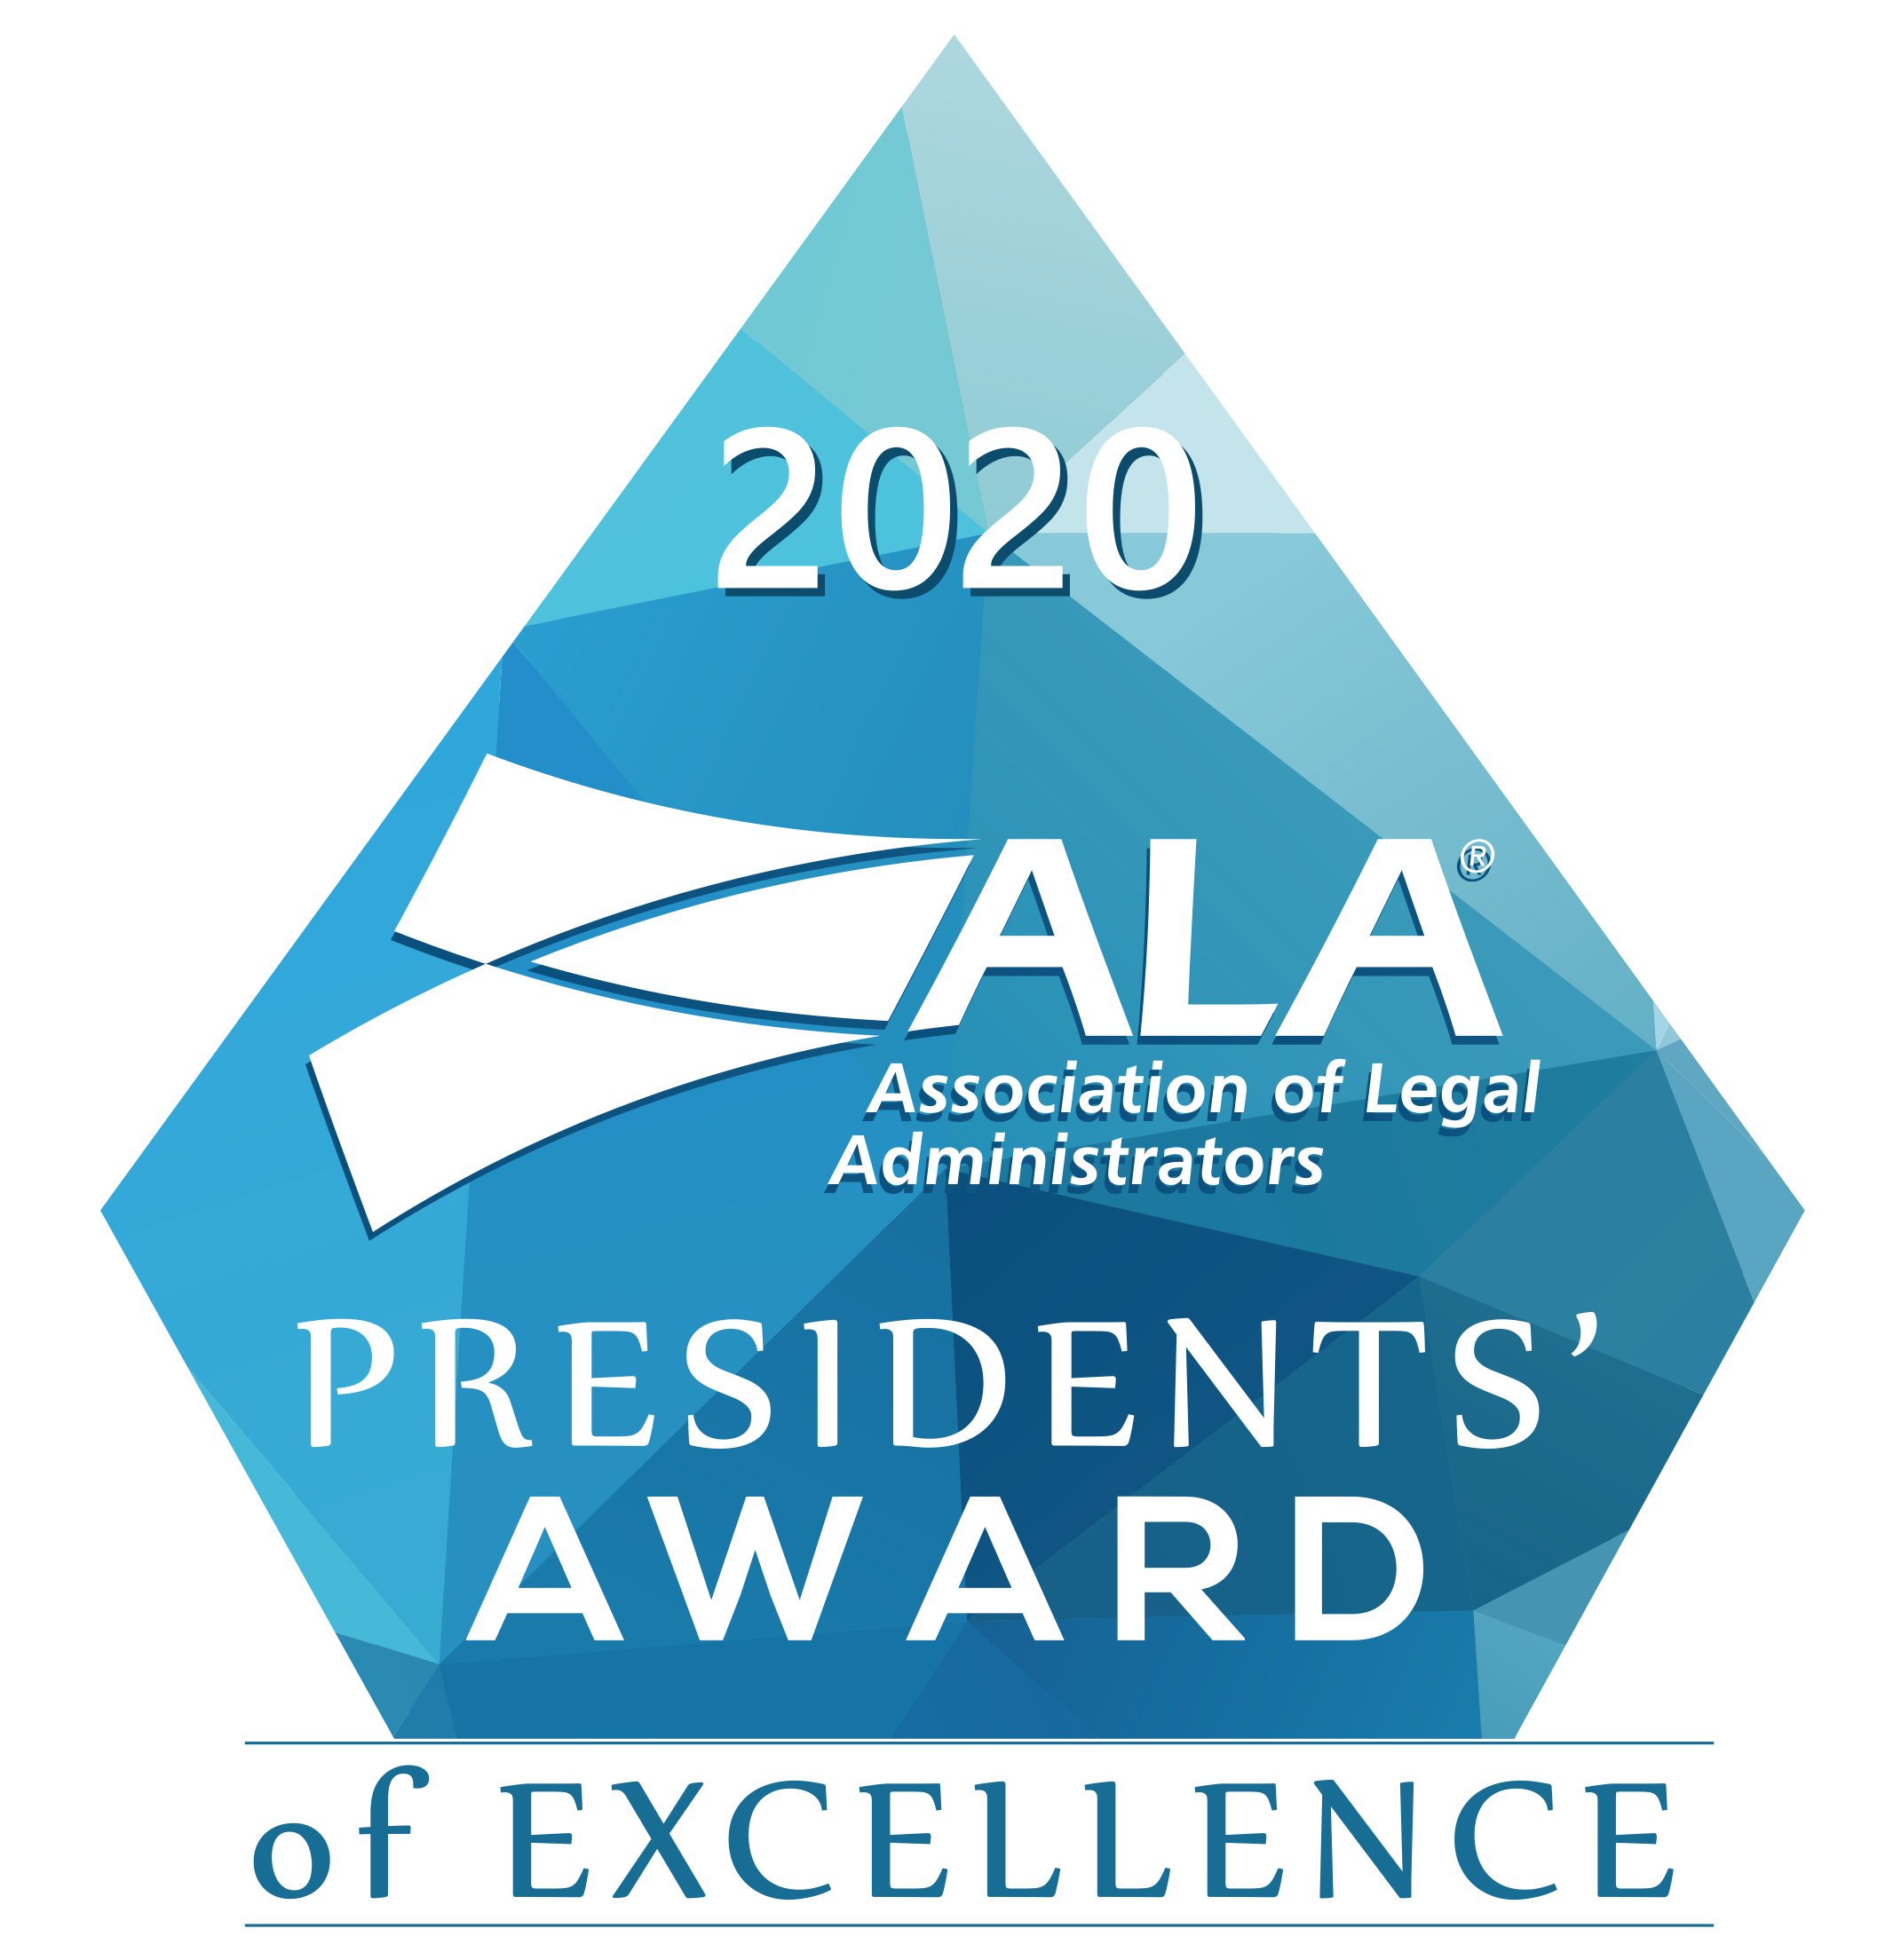 2020 Presidents' Award of Excellence